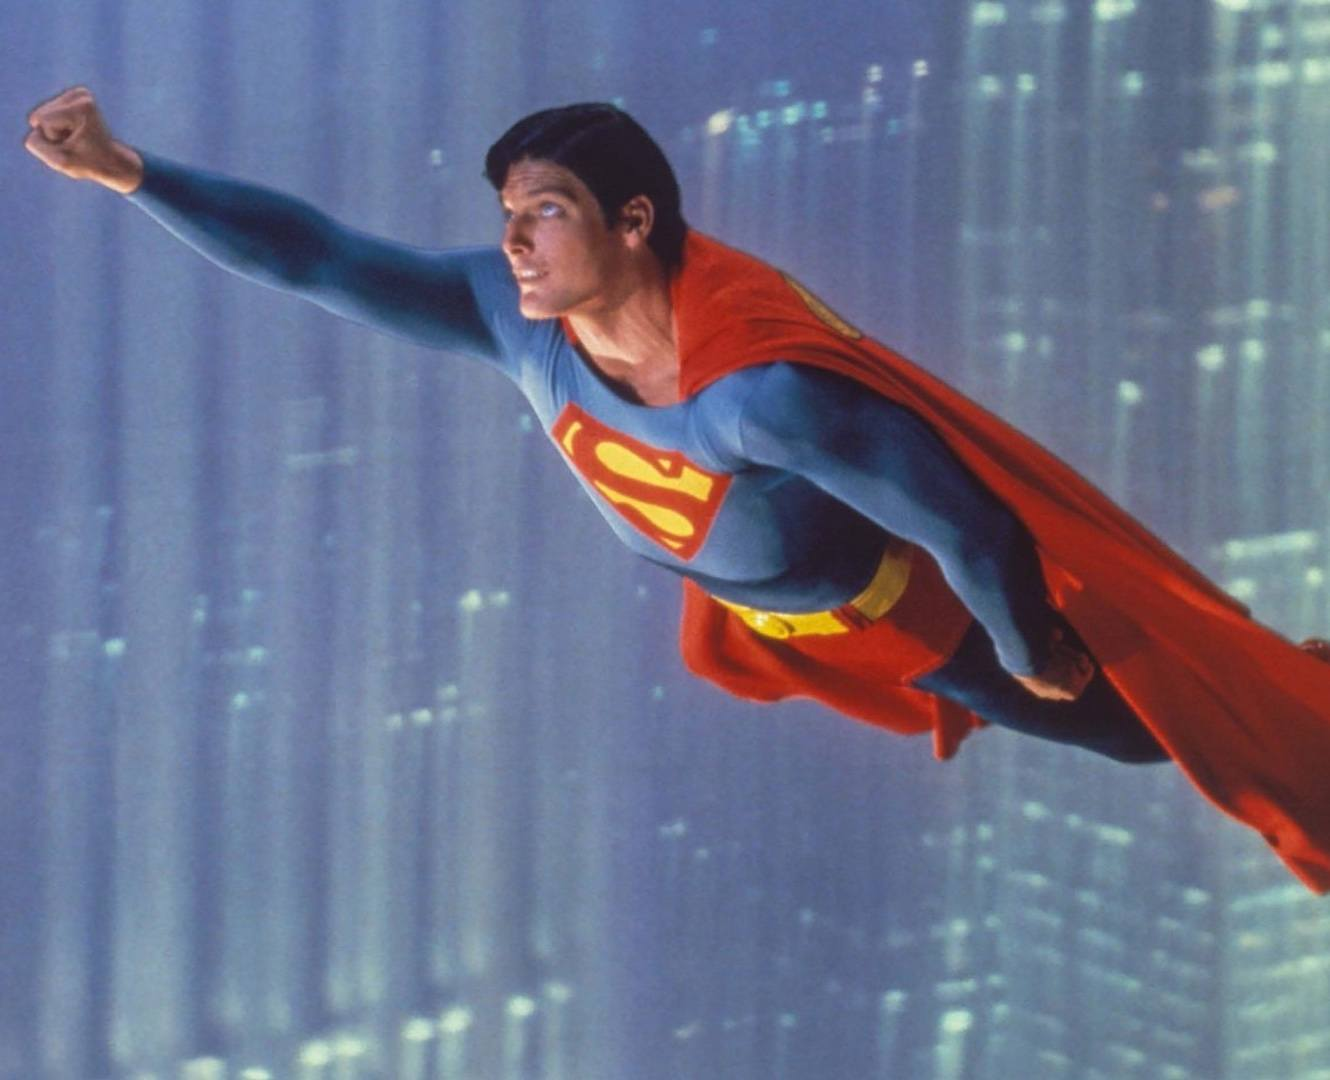 superman the movie richard donner christopher reeve 1978 24 Things You Probably Didn't Know About Christopher Reeve's Superman Films